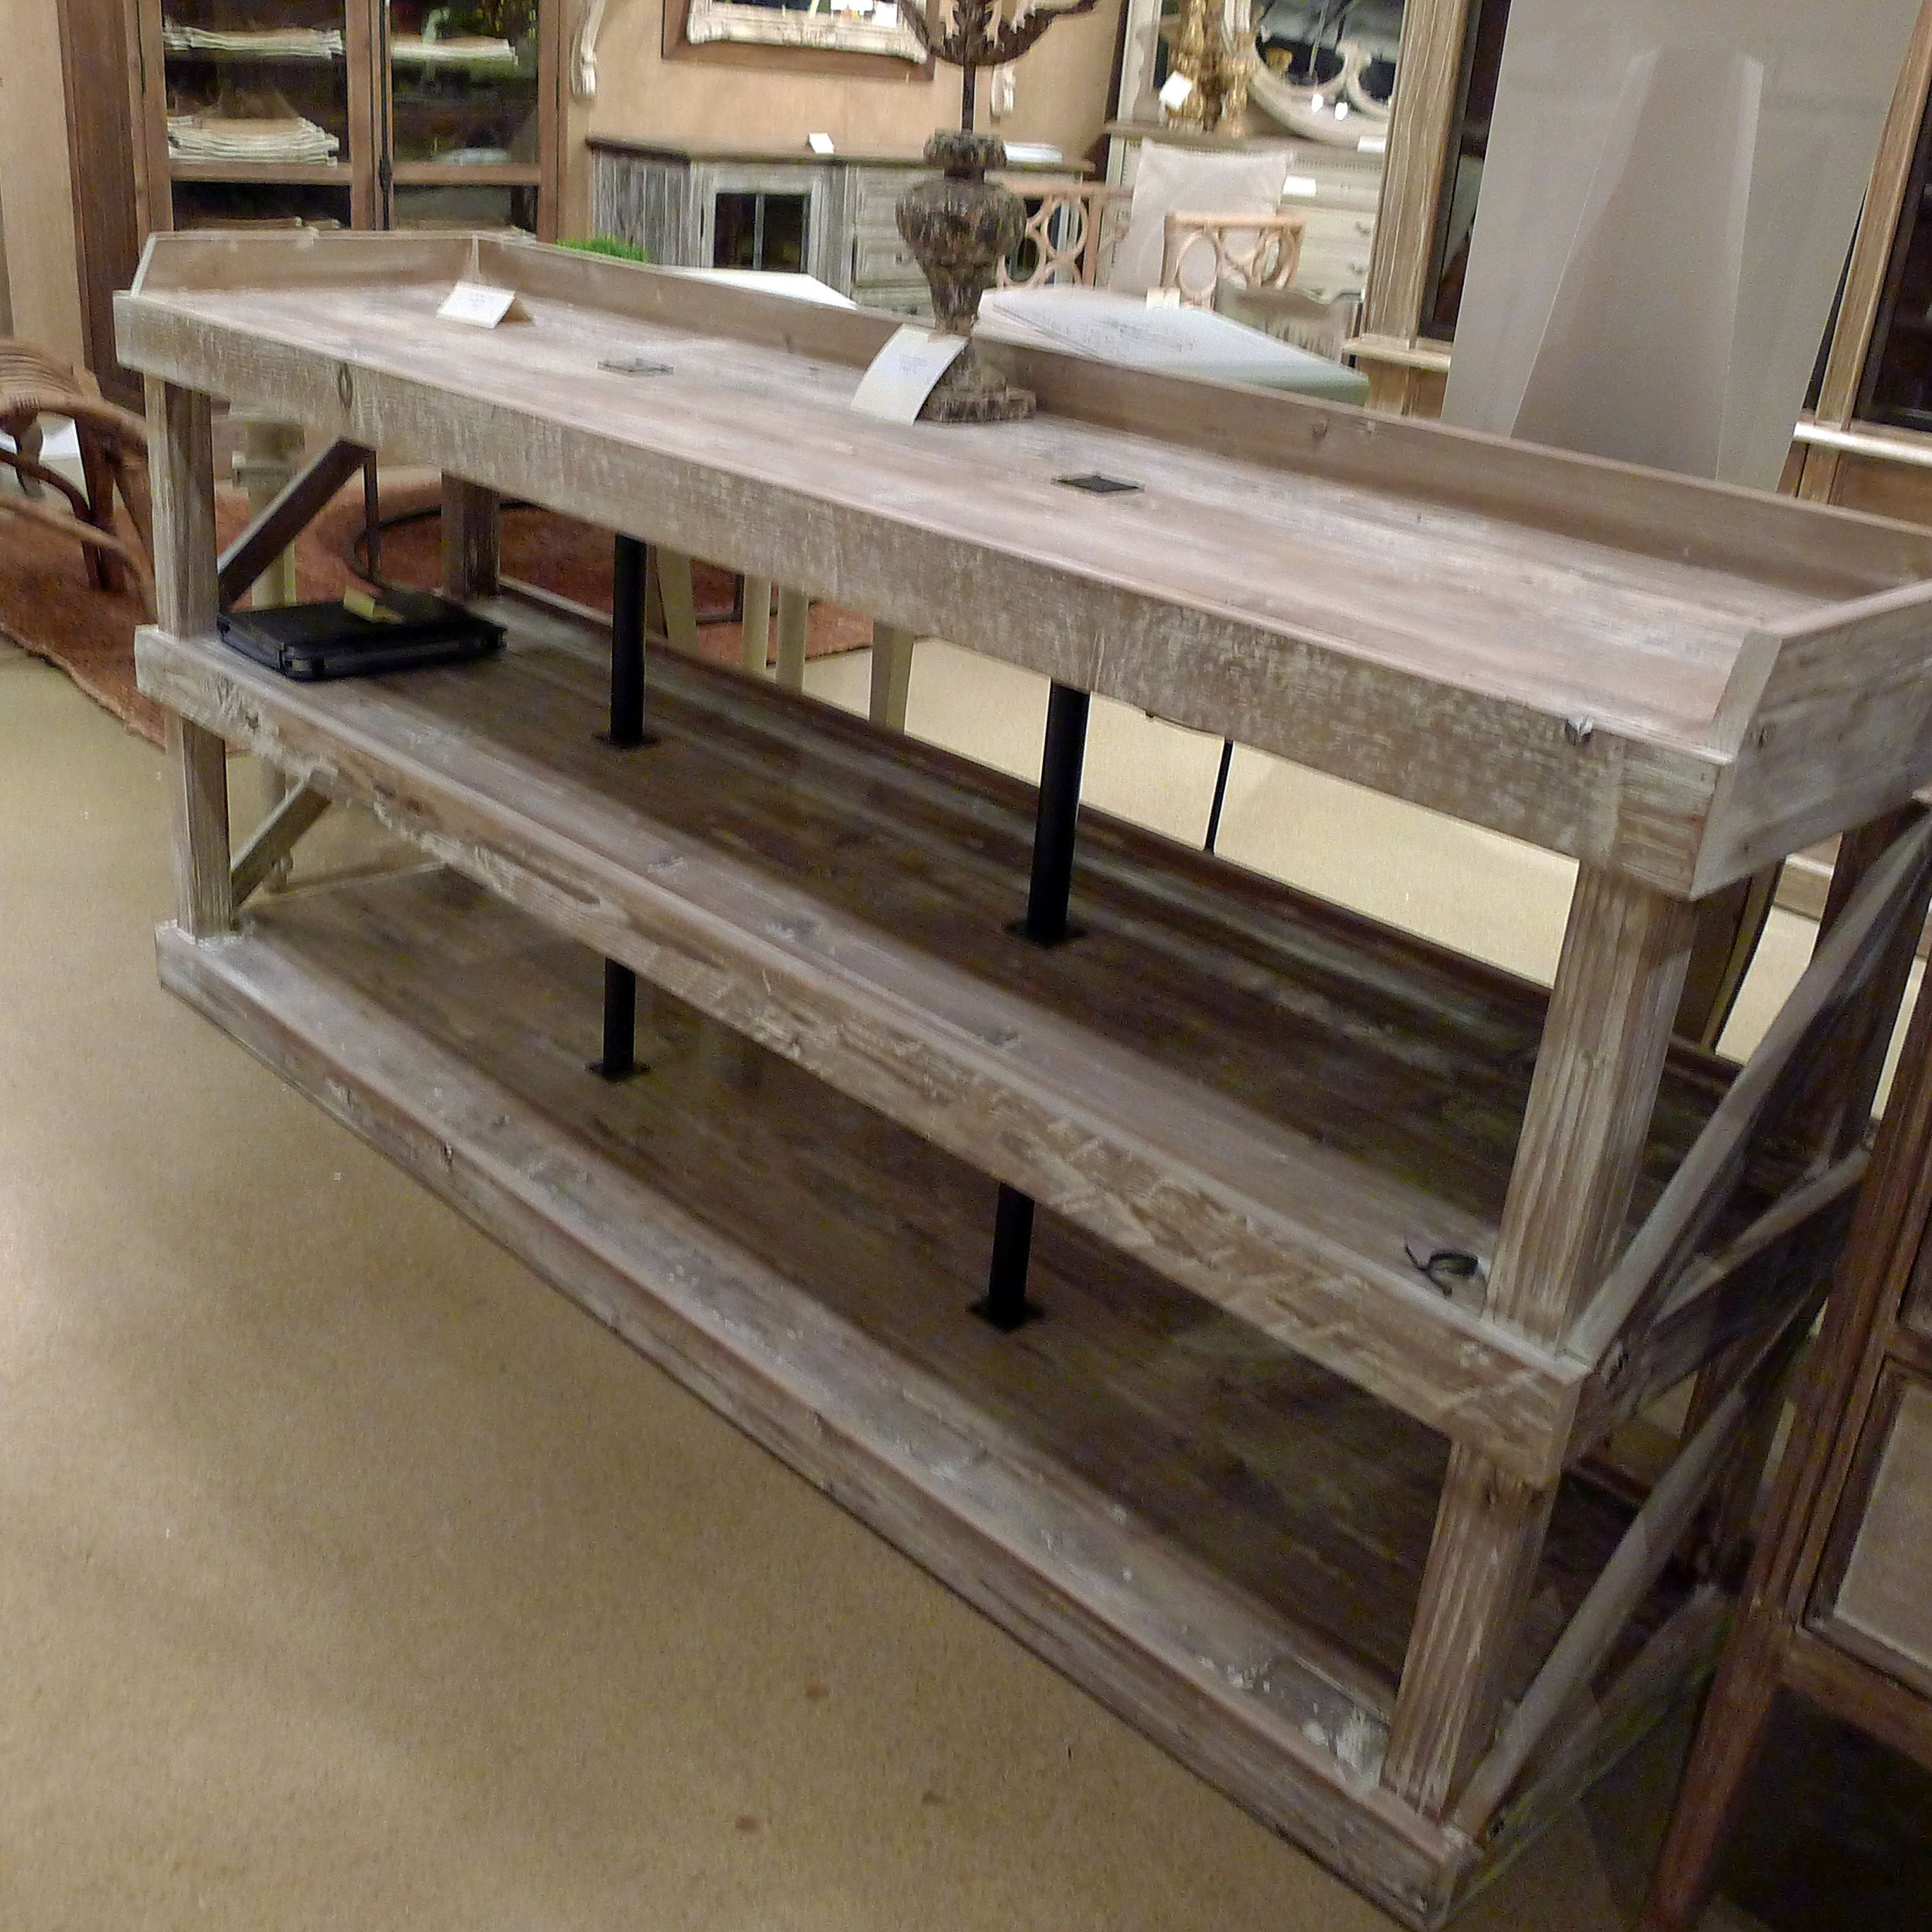 Rustic White Washed Shelving By Gabby